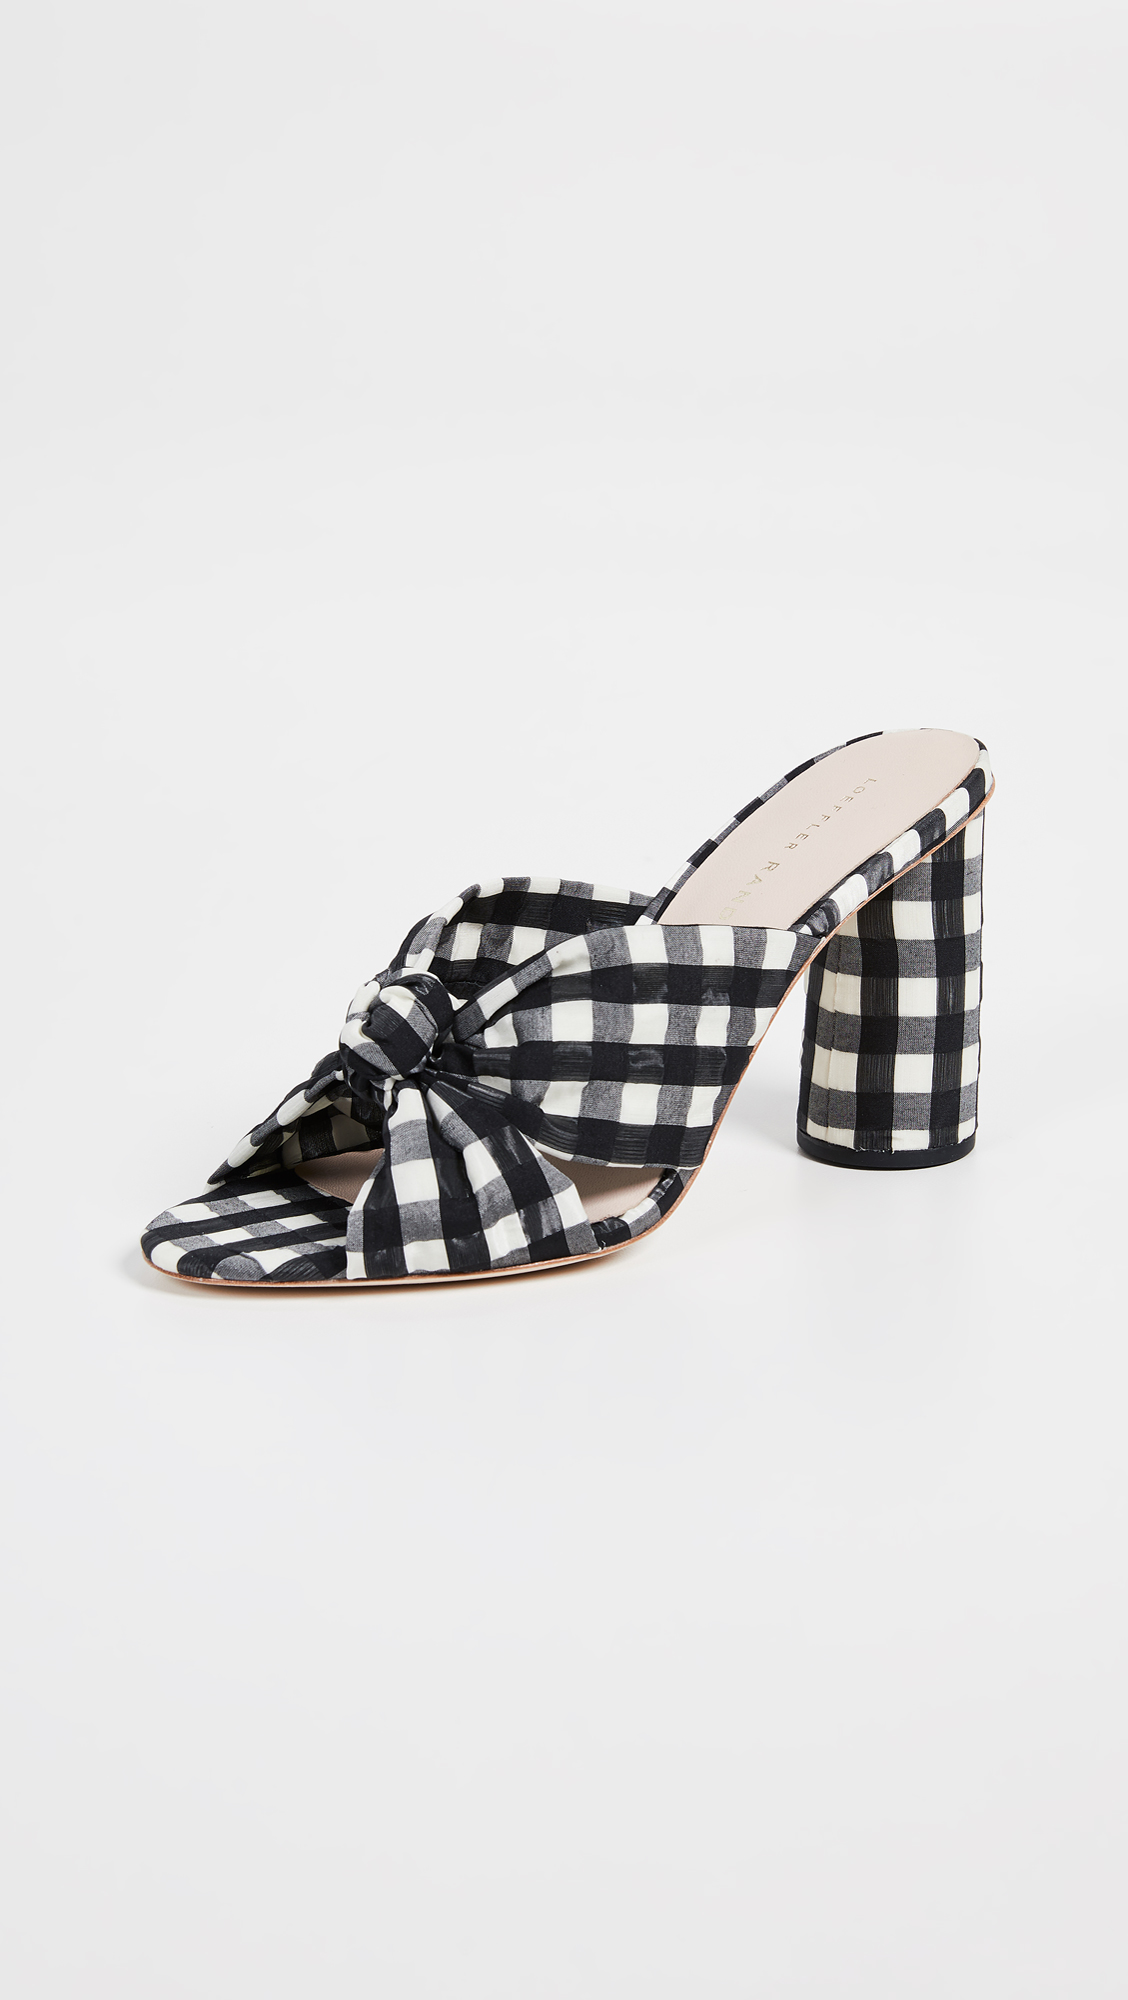 A block-heel sandal - This sandal would be perfect with a pair of white, wide-leg jeans and a denim jacket—a simple and effortless look!